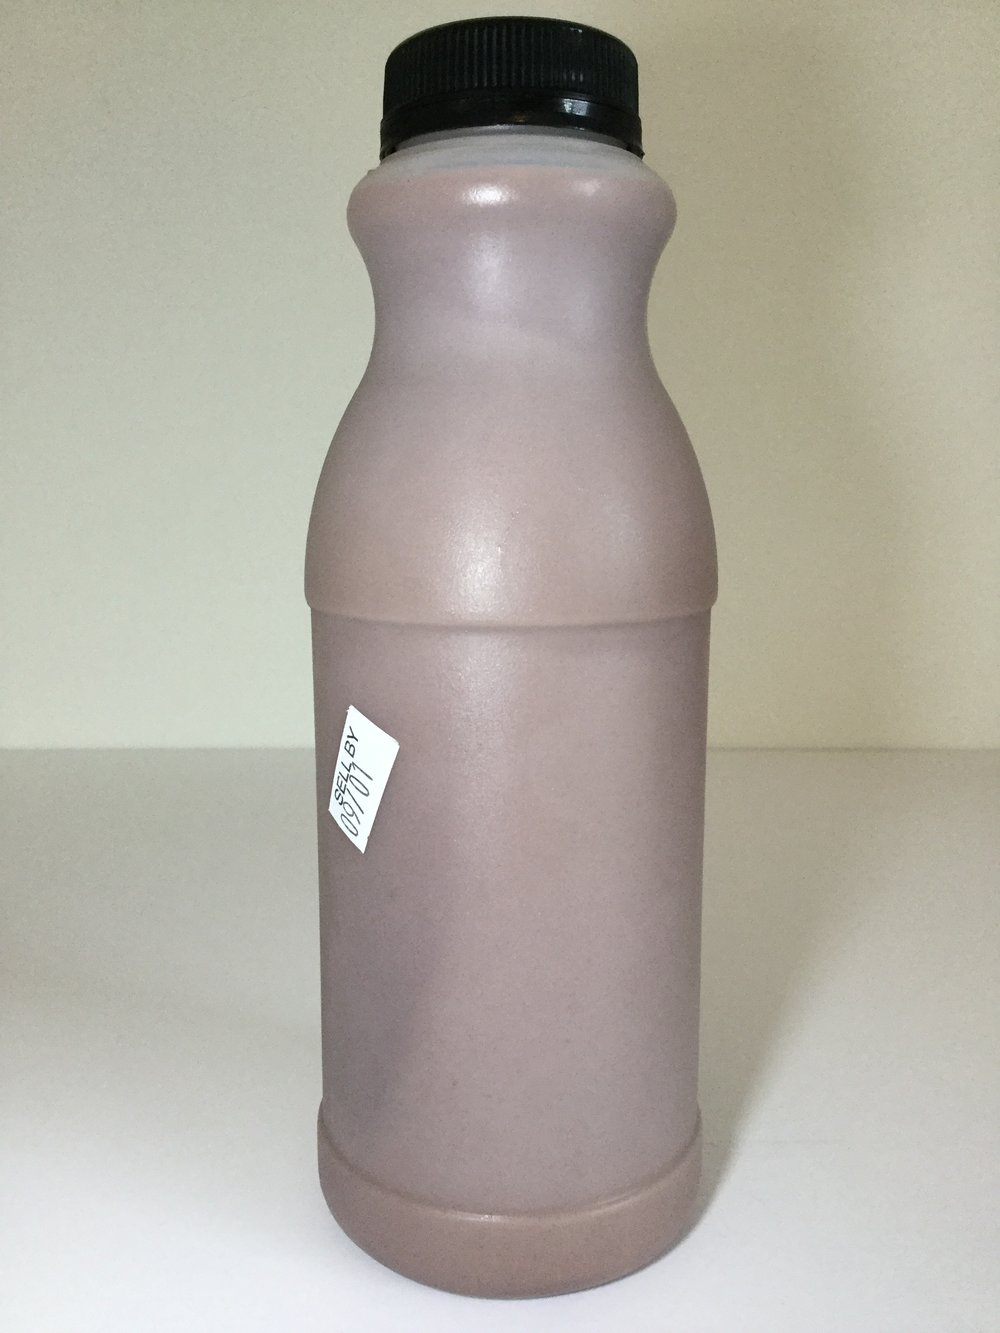 Edgewood Creamery Chocolate Milk Side 1